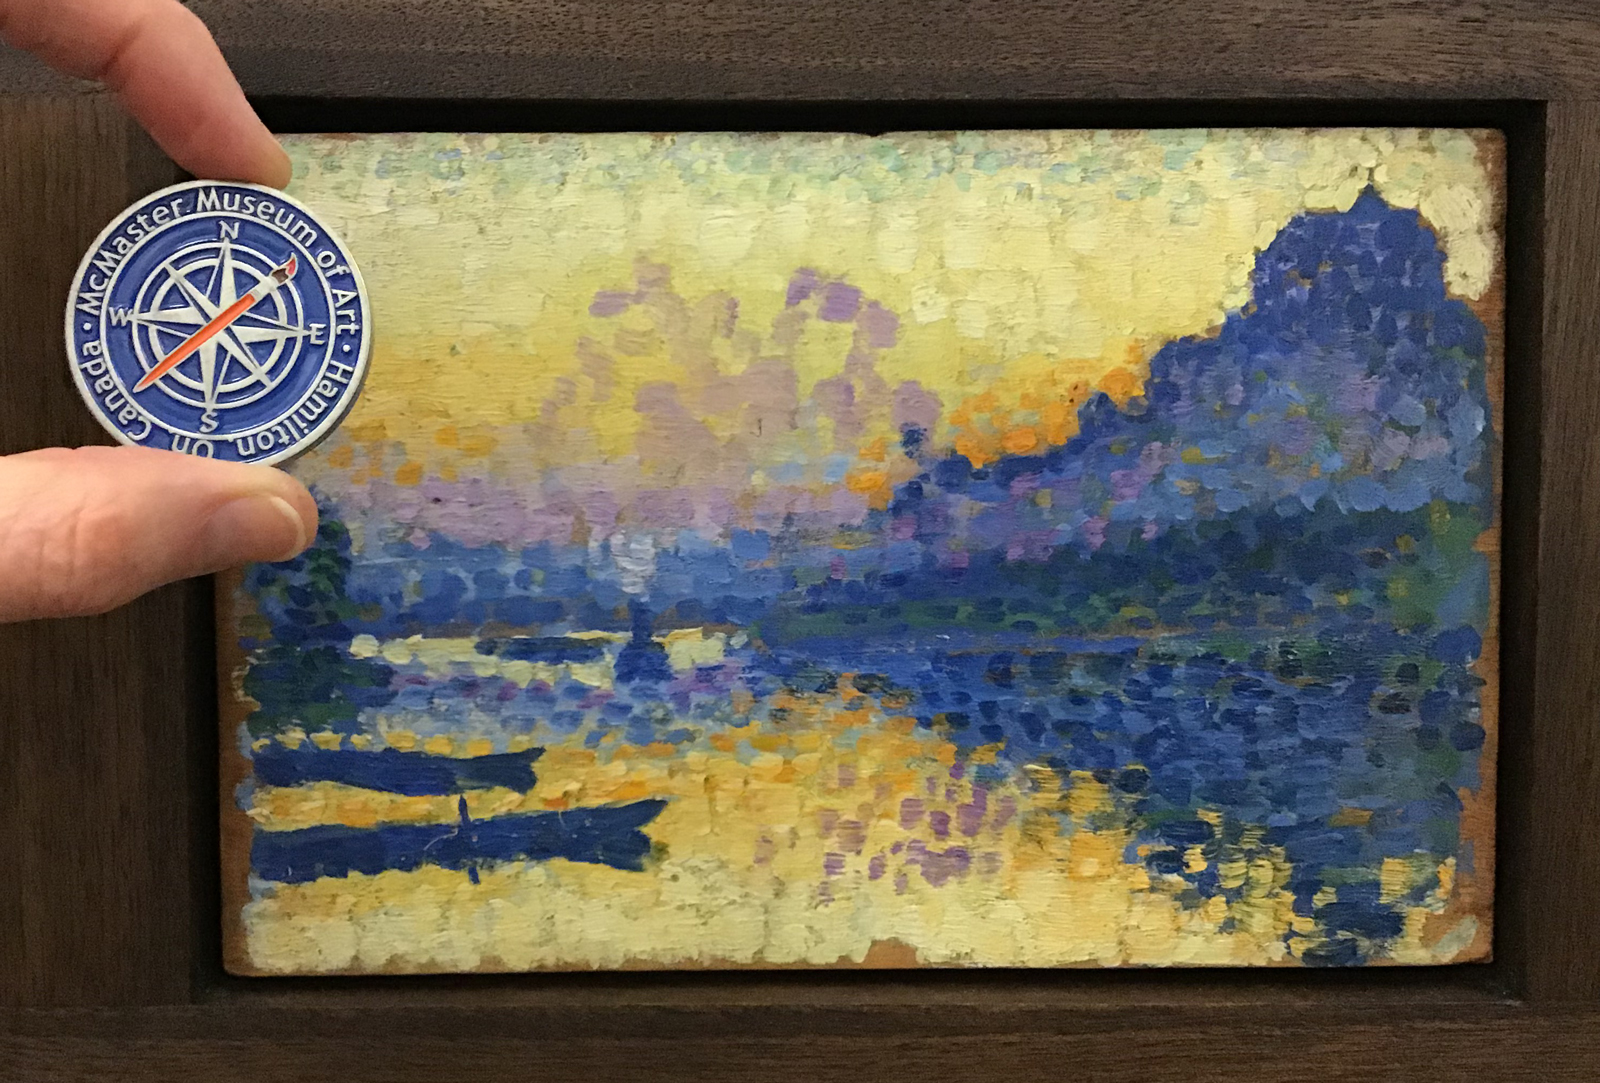 Lemmen Geocoin with painting from McMaster's collection, for which it was named.